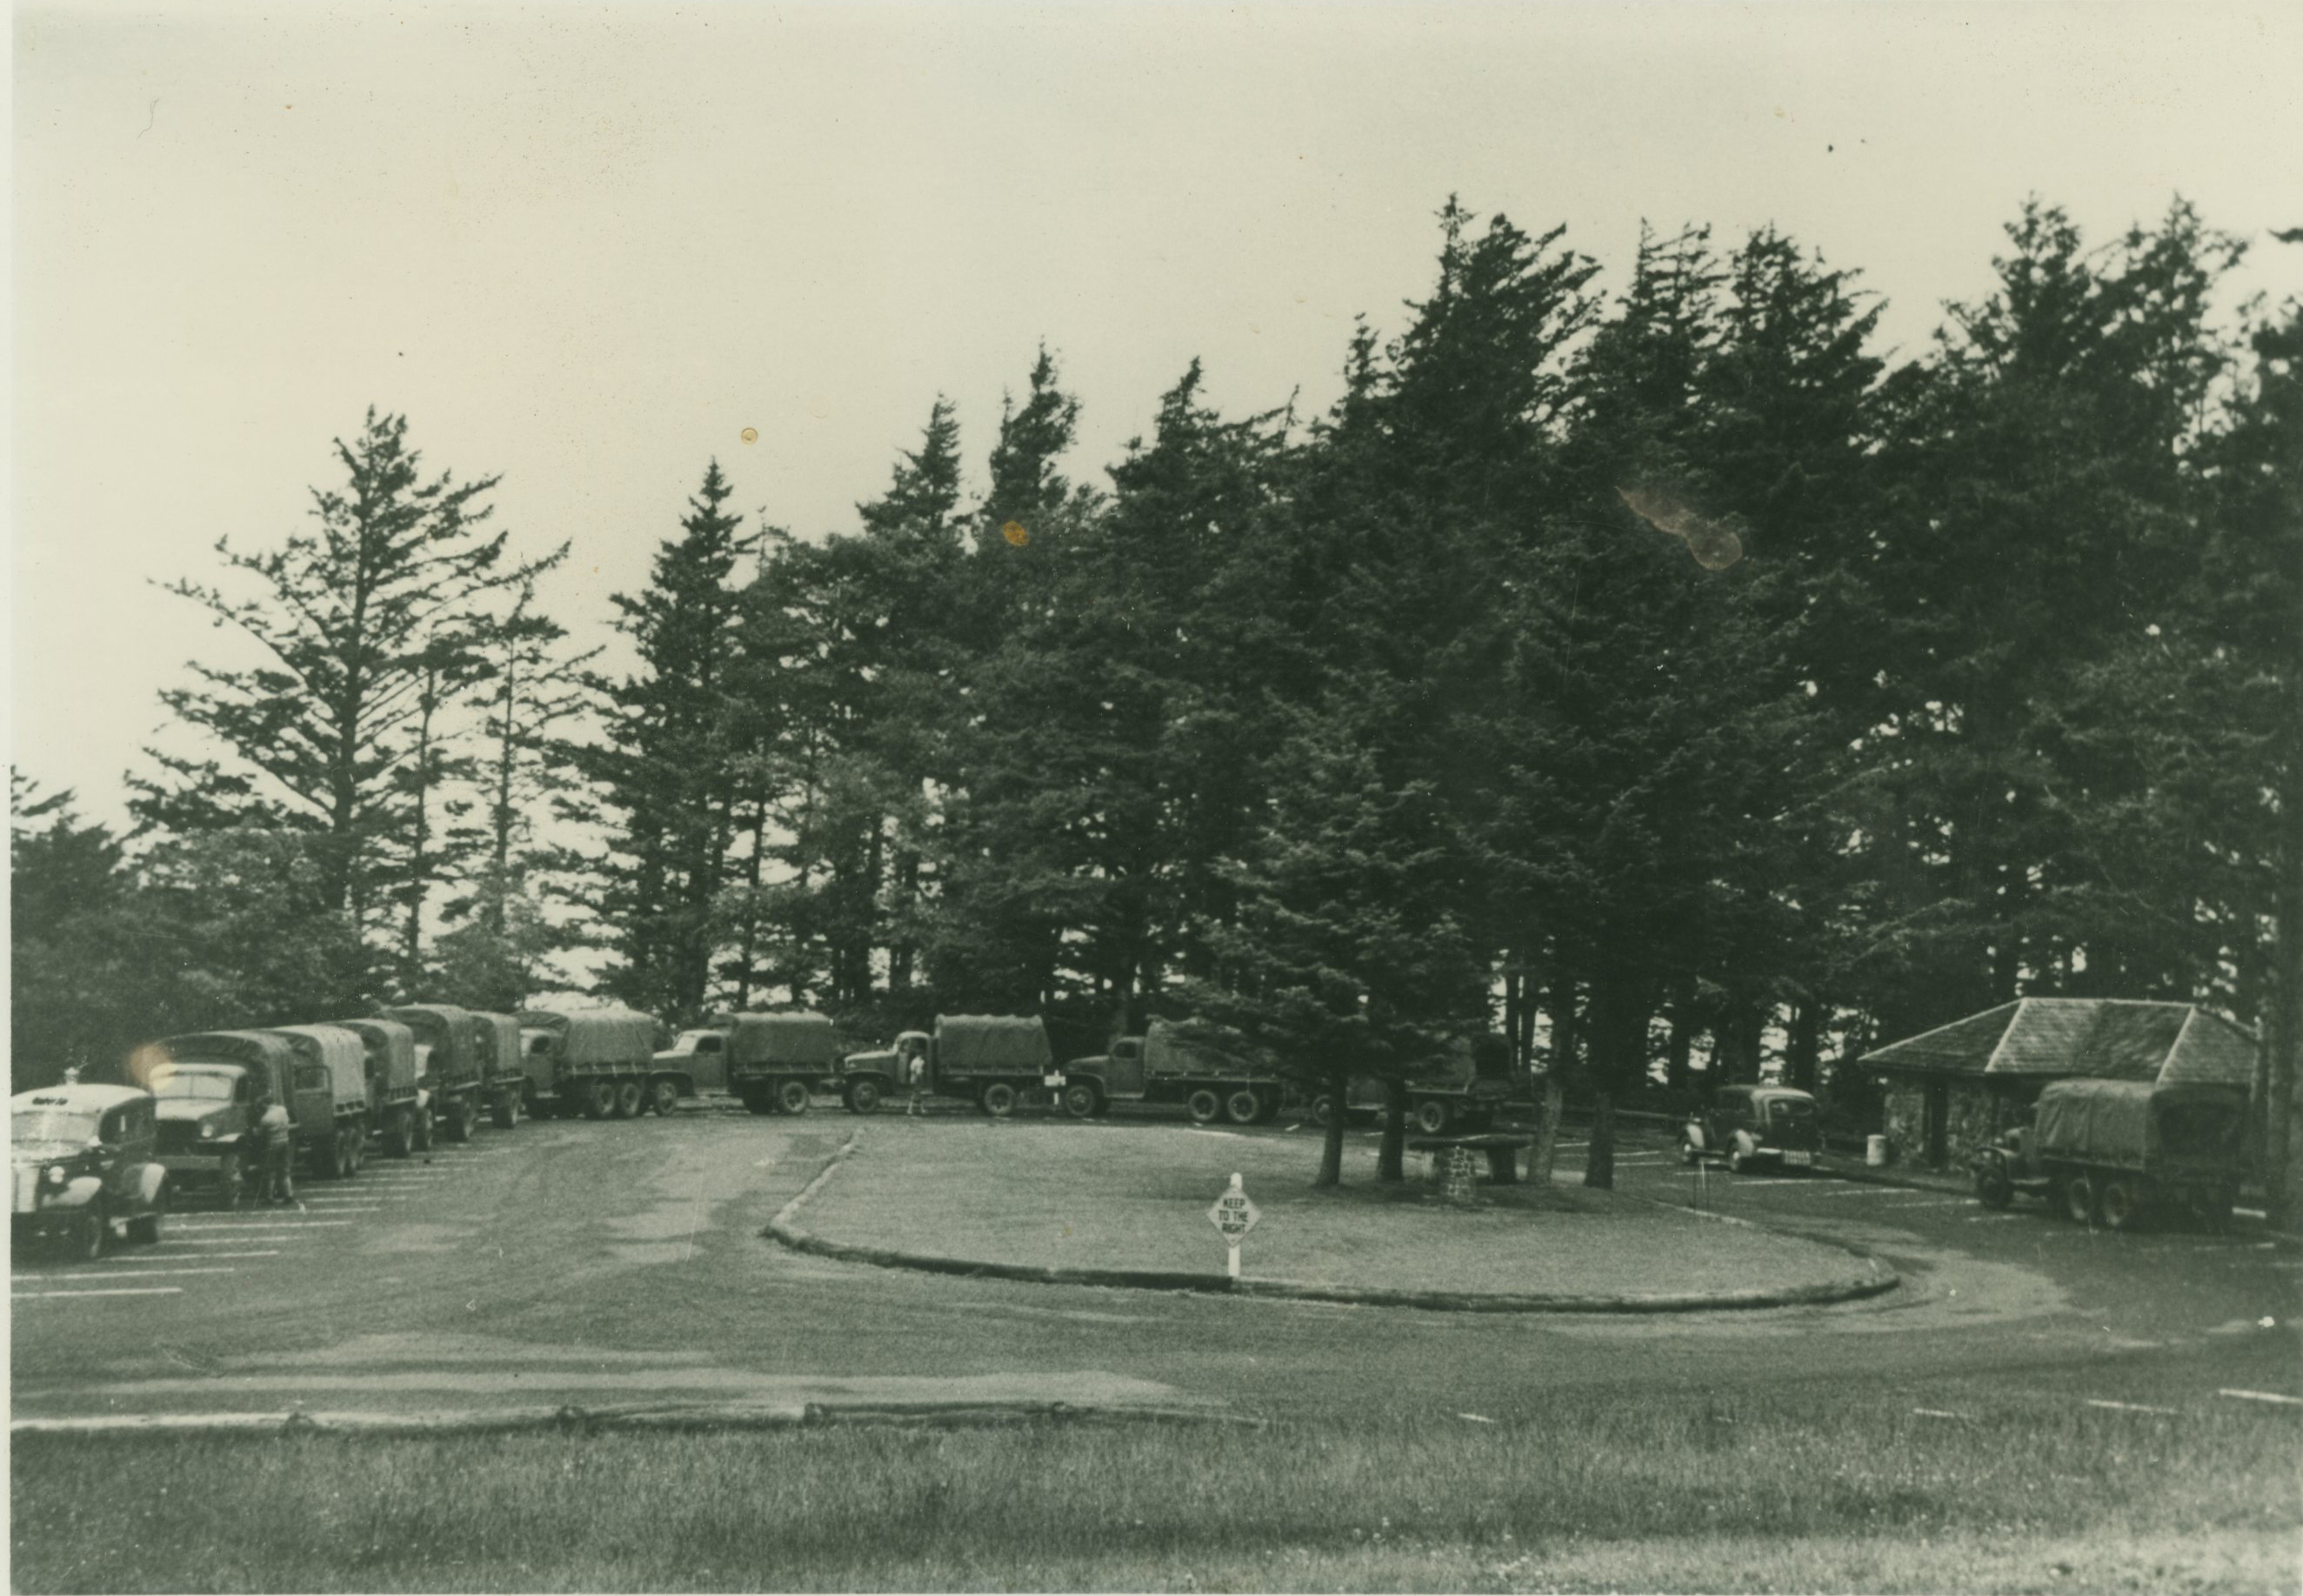 The CCC camp at Ecola State Park.